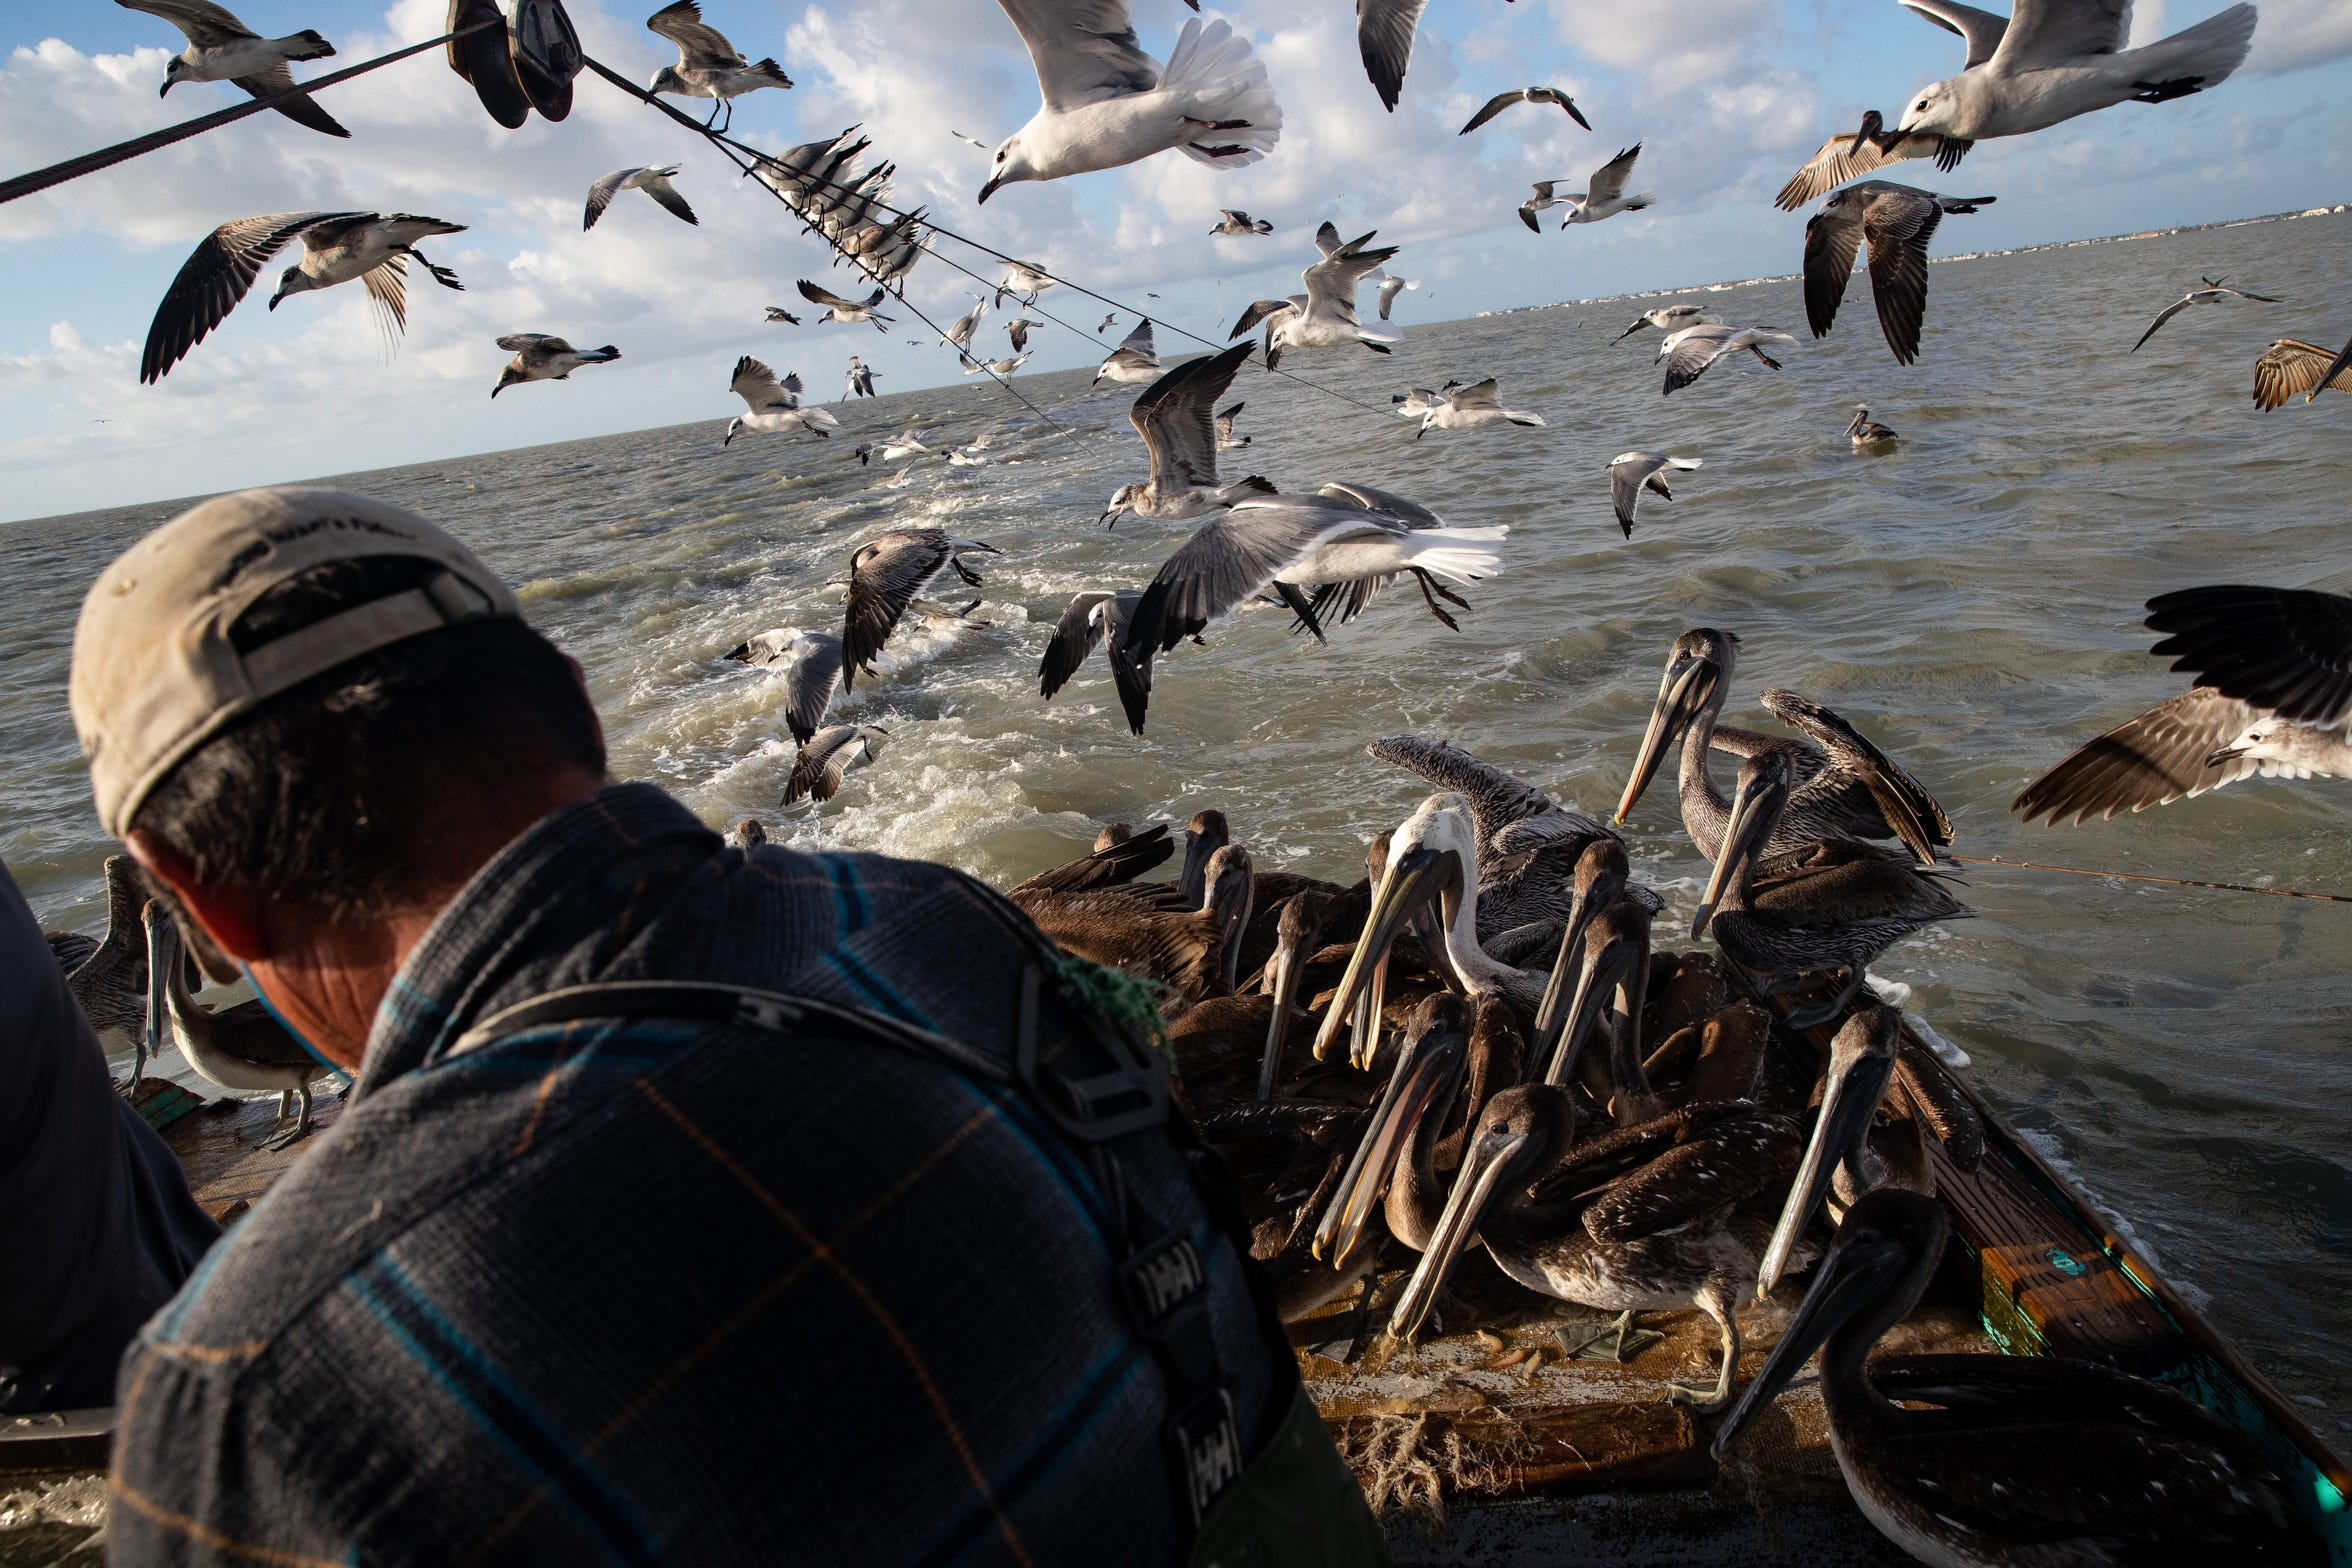 Birds follow and sit on the deck of Doan Pham's shrimping boat, Margie as he shorts what he caught in Aransas Bay on Tuesday, Oct. 1, 2109.